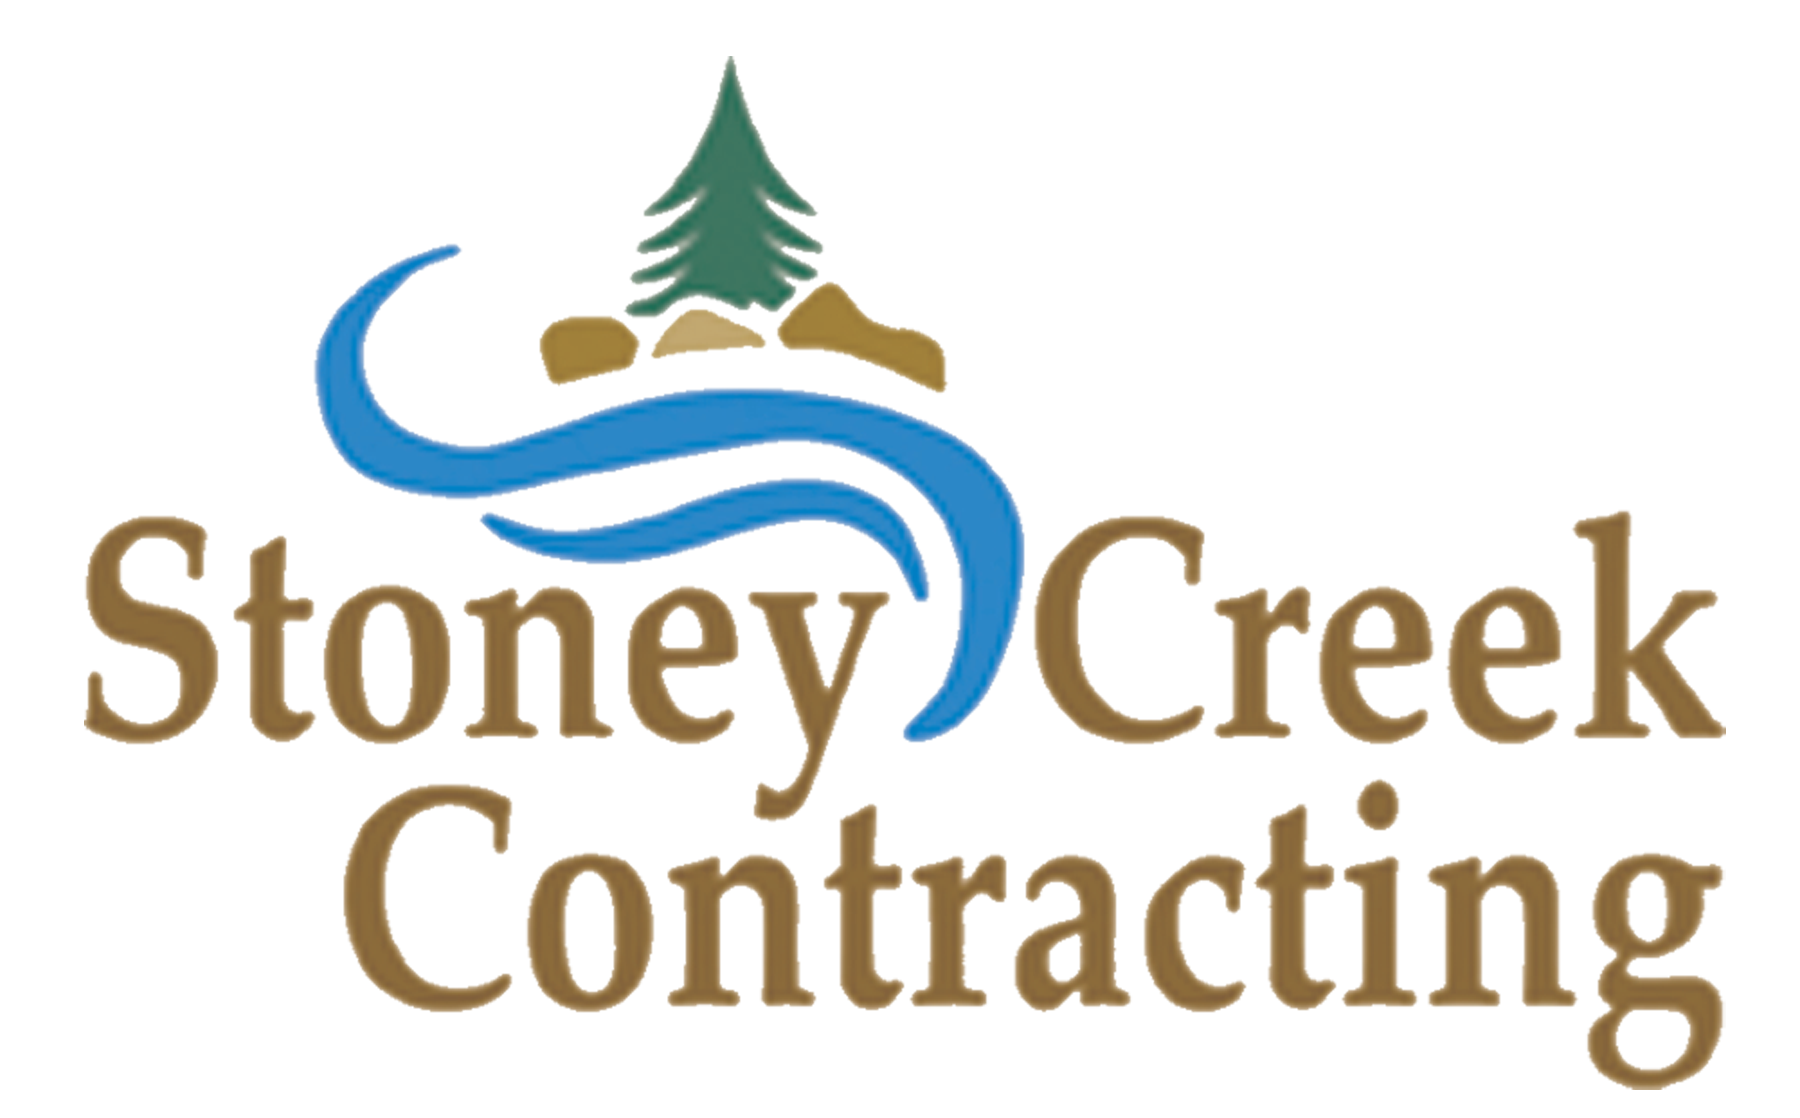 Stoney Creek Contracting